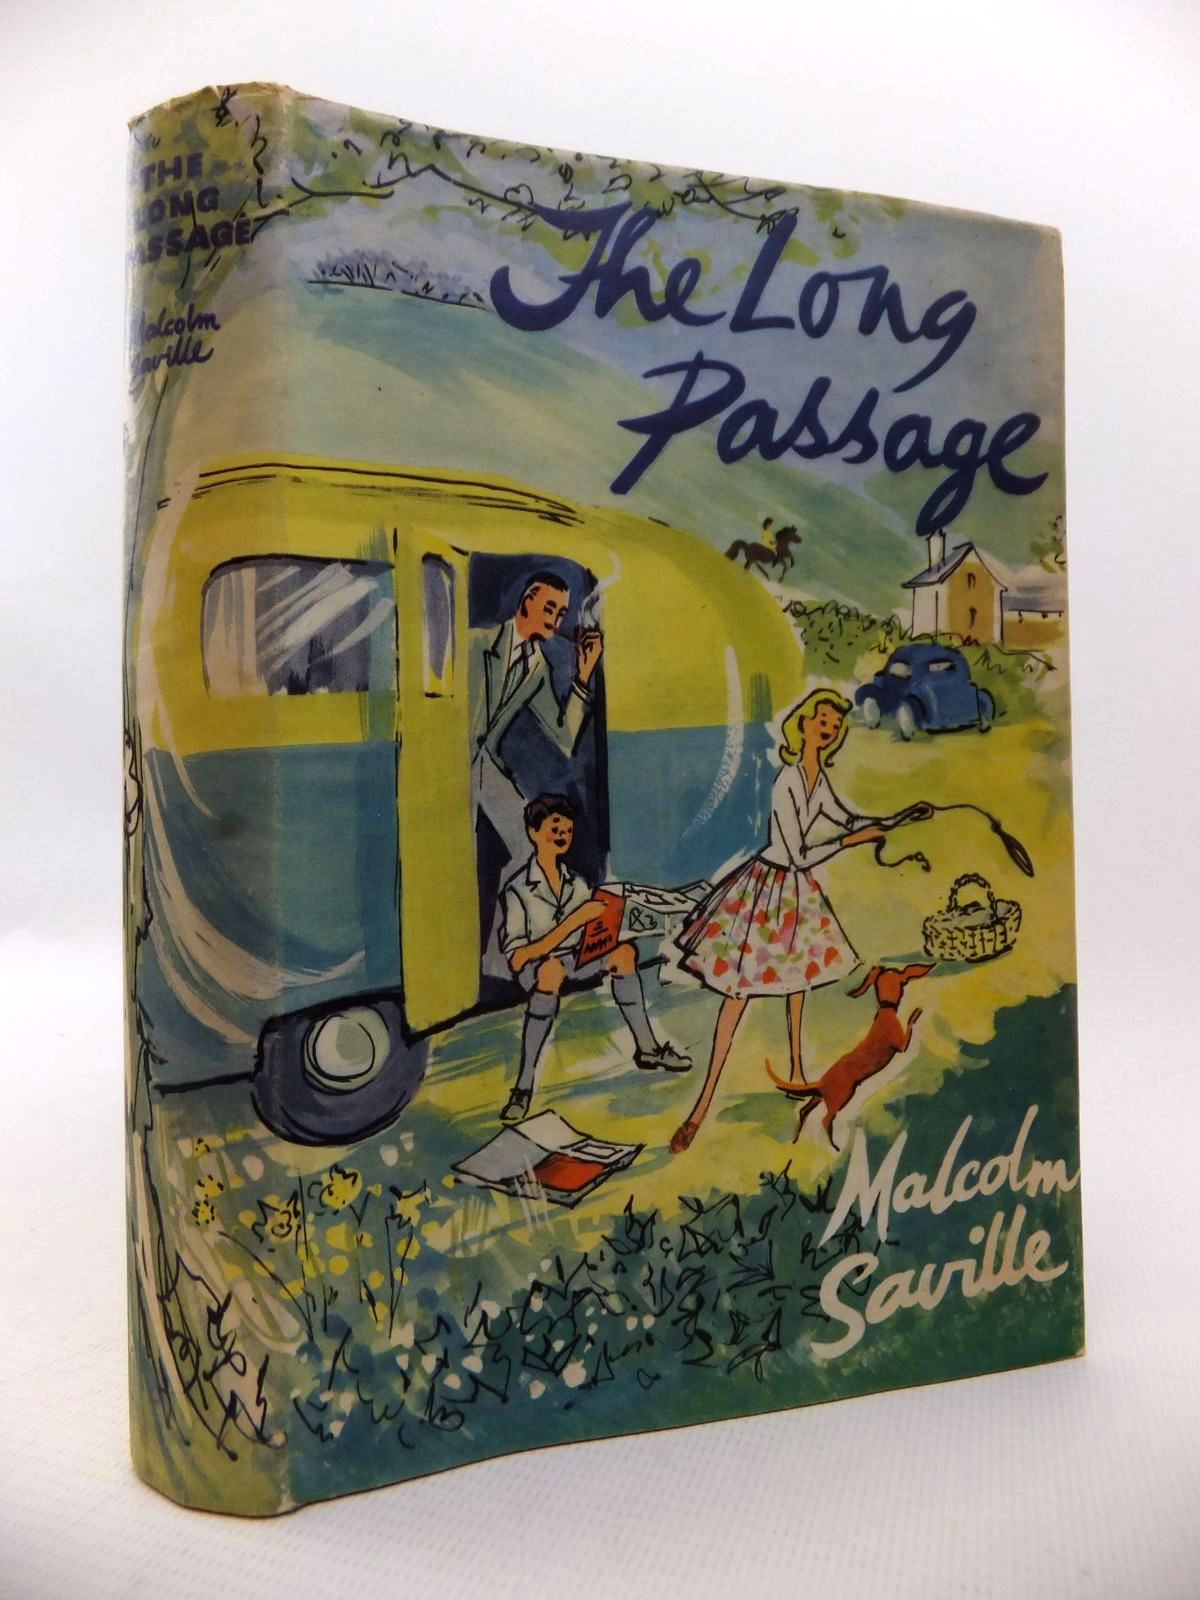 Photo of THE LONG PASSAGE written by Saville, Malcolm illustrated by Bush, Alice published by The Children's Book Club (STOCK CODE: 1813603)  for sale by Stella & Rose's Books